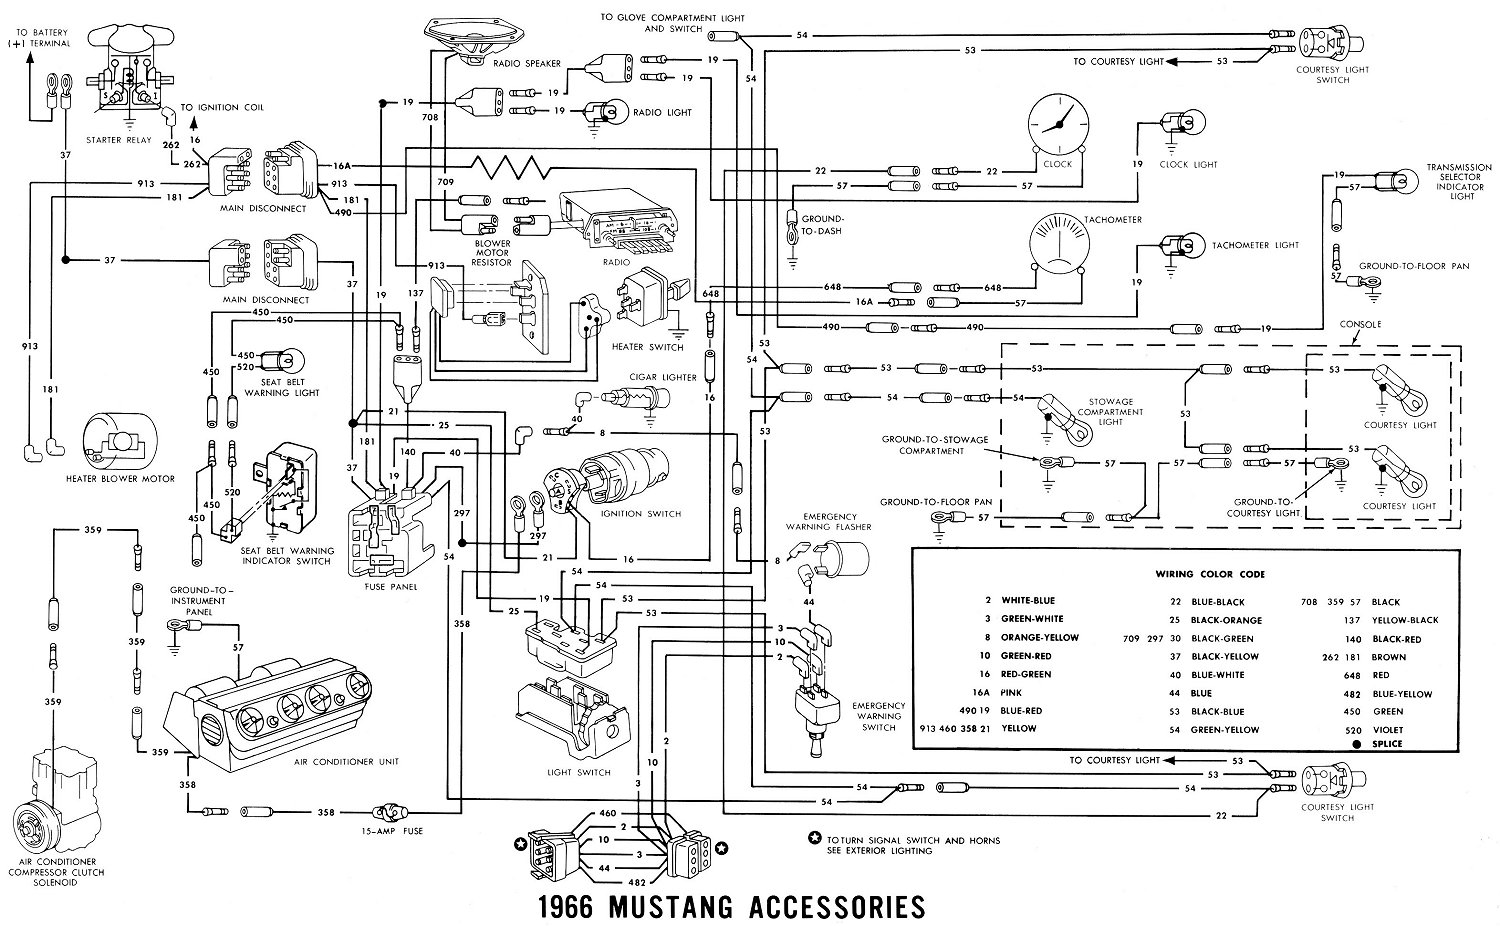 66acces1 66 mustang wiring diagram radio tape 66 mustang fuse diagram 1970 mustang radio wiring diagram at virtualis.co